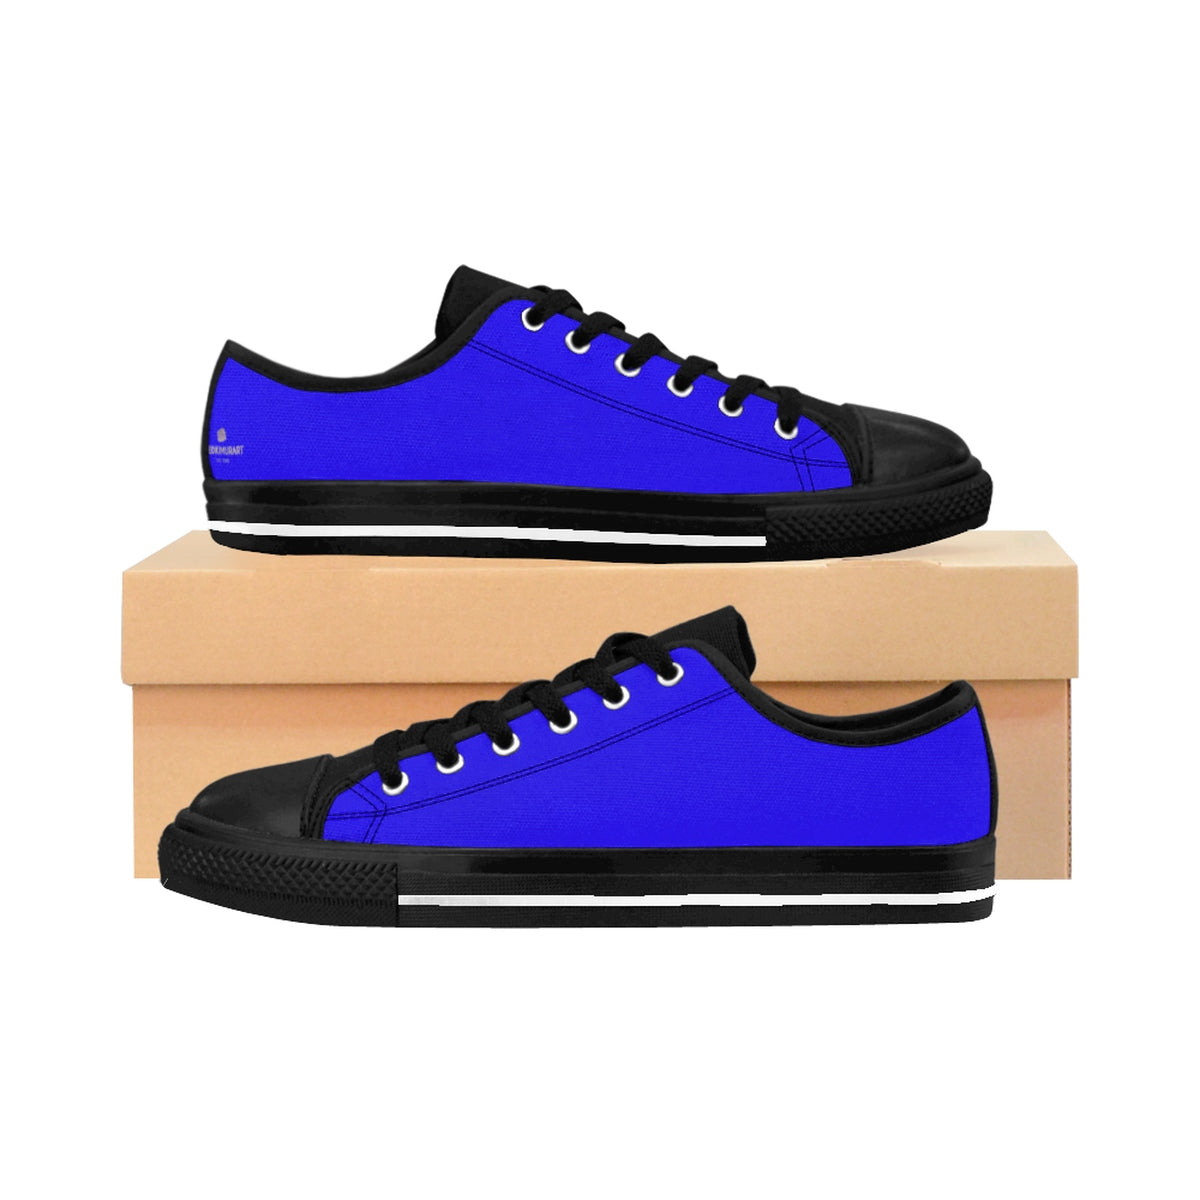 Deep Blue Sky Solid Color Designer Men's Running Low Top Sneakers Tennis Shoes-Men's Low Top Sneakers-US 9-Heidi Kimura Art LLC Deep Blue Men's Sneakers, Deep Blue Sky Solid Color Designer Men's Running Low Top Sneakers Tennis Shoes (US Size: 7-14)